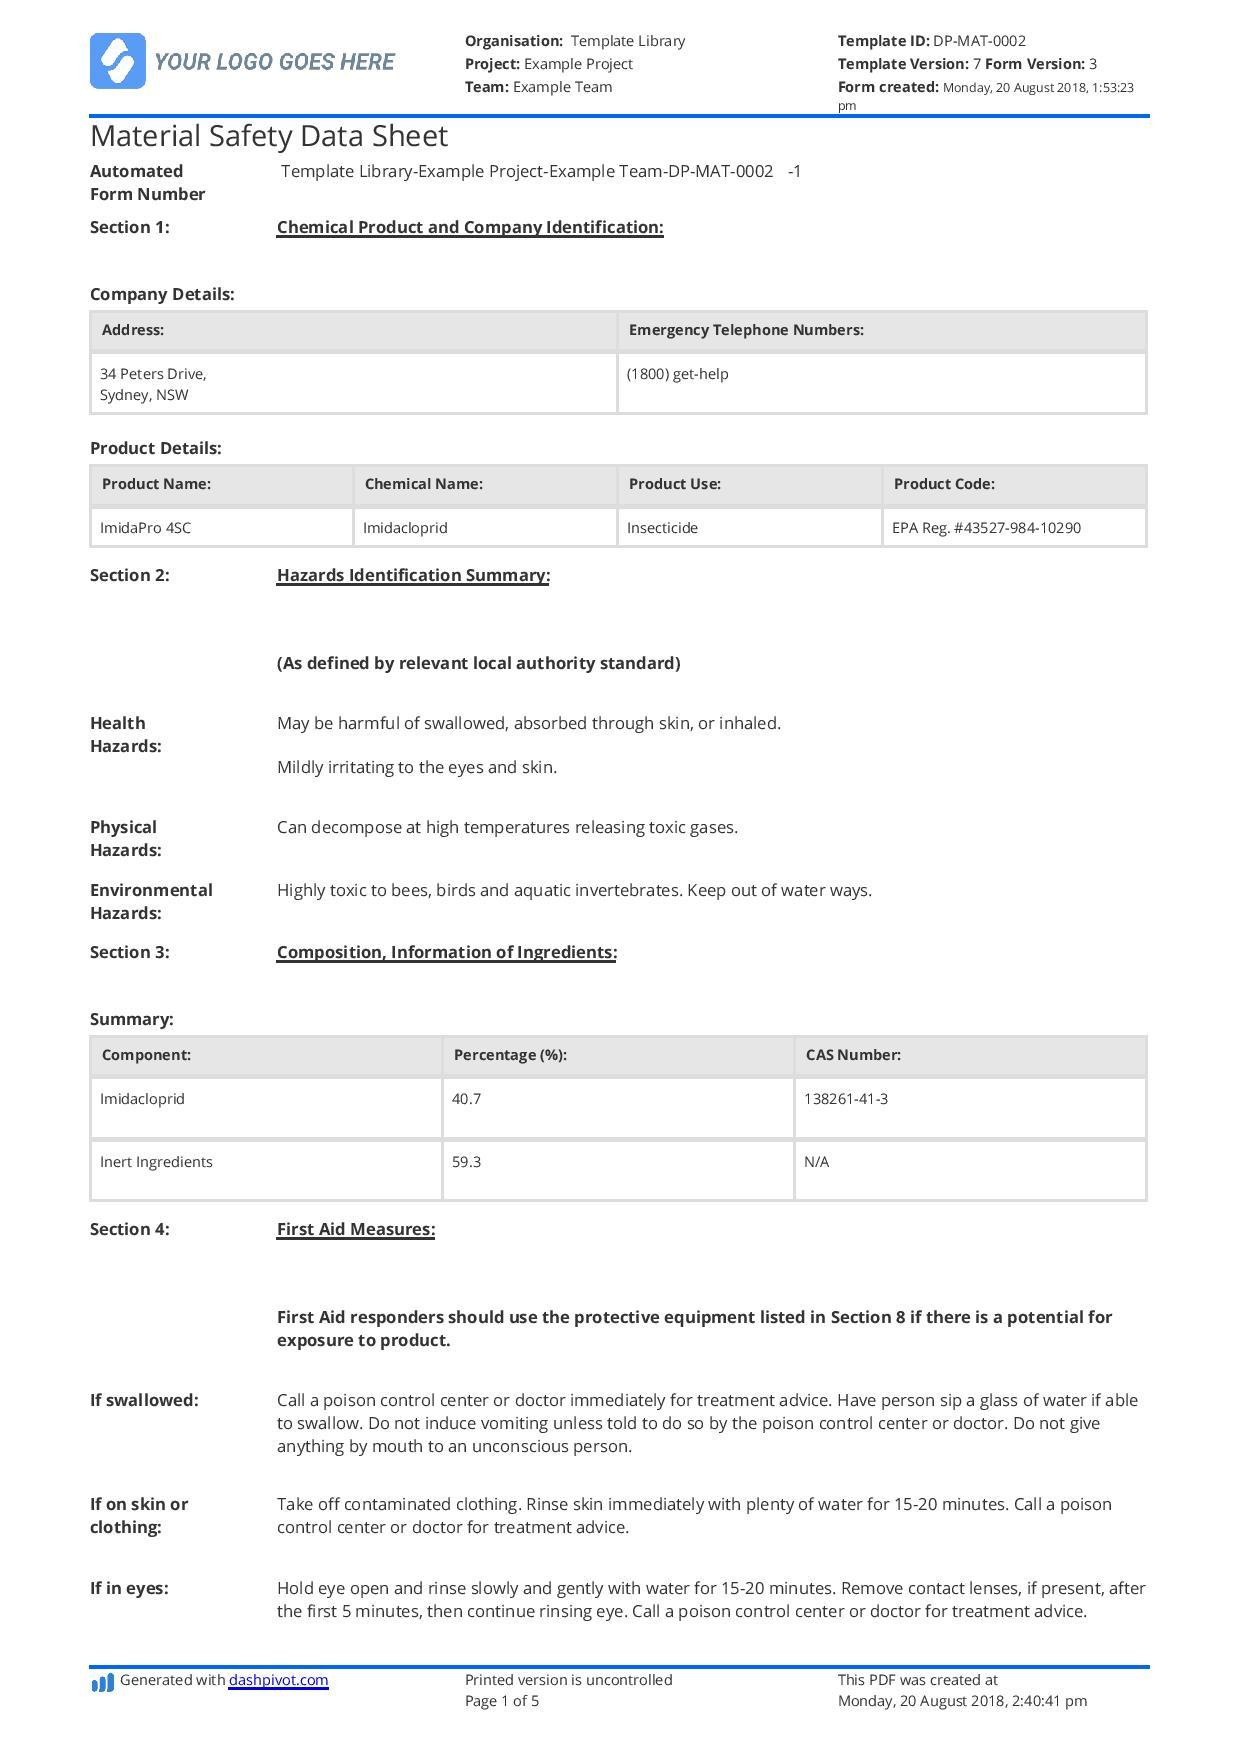 Blank Material Safety Data Sheet Example